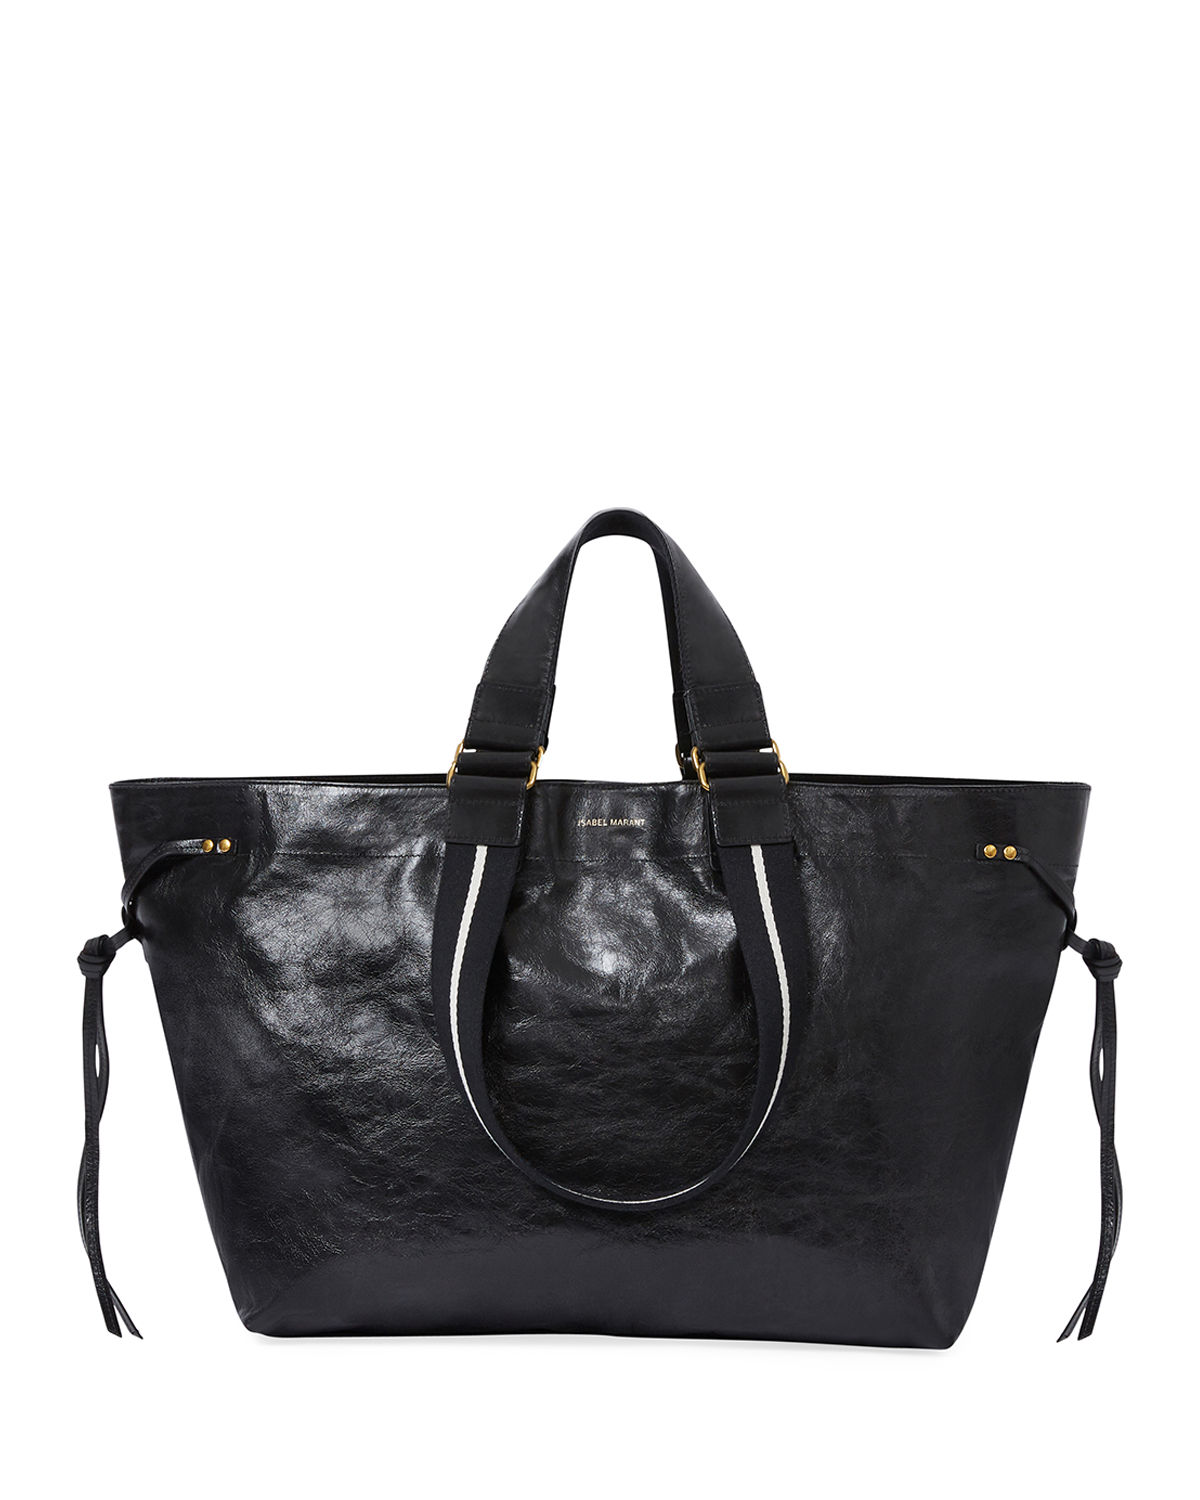 Wardy Iconic Leather Shopper Tote Bag